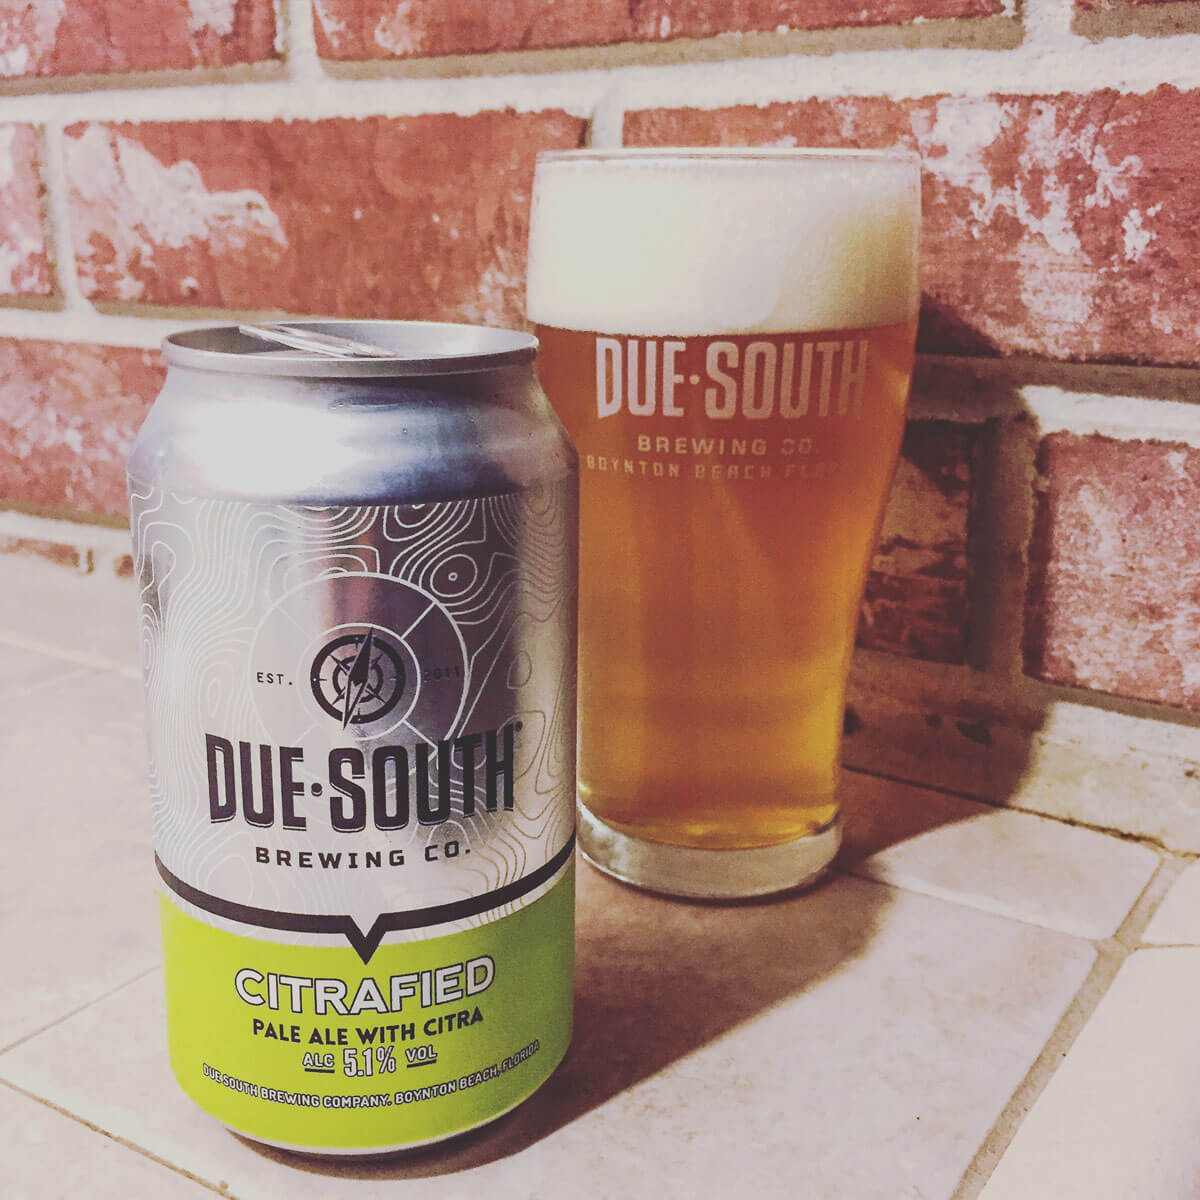 Citrafied, an American Pale Ale by Due South Brewing Co.